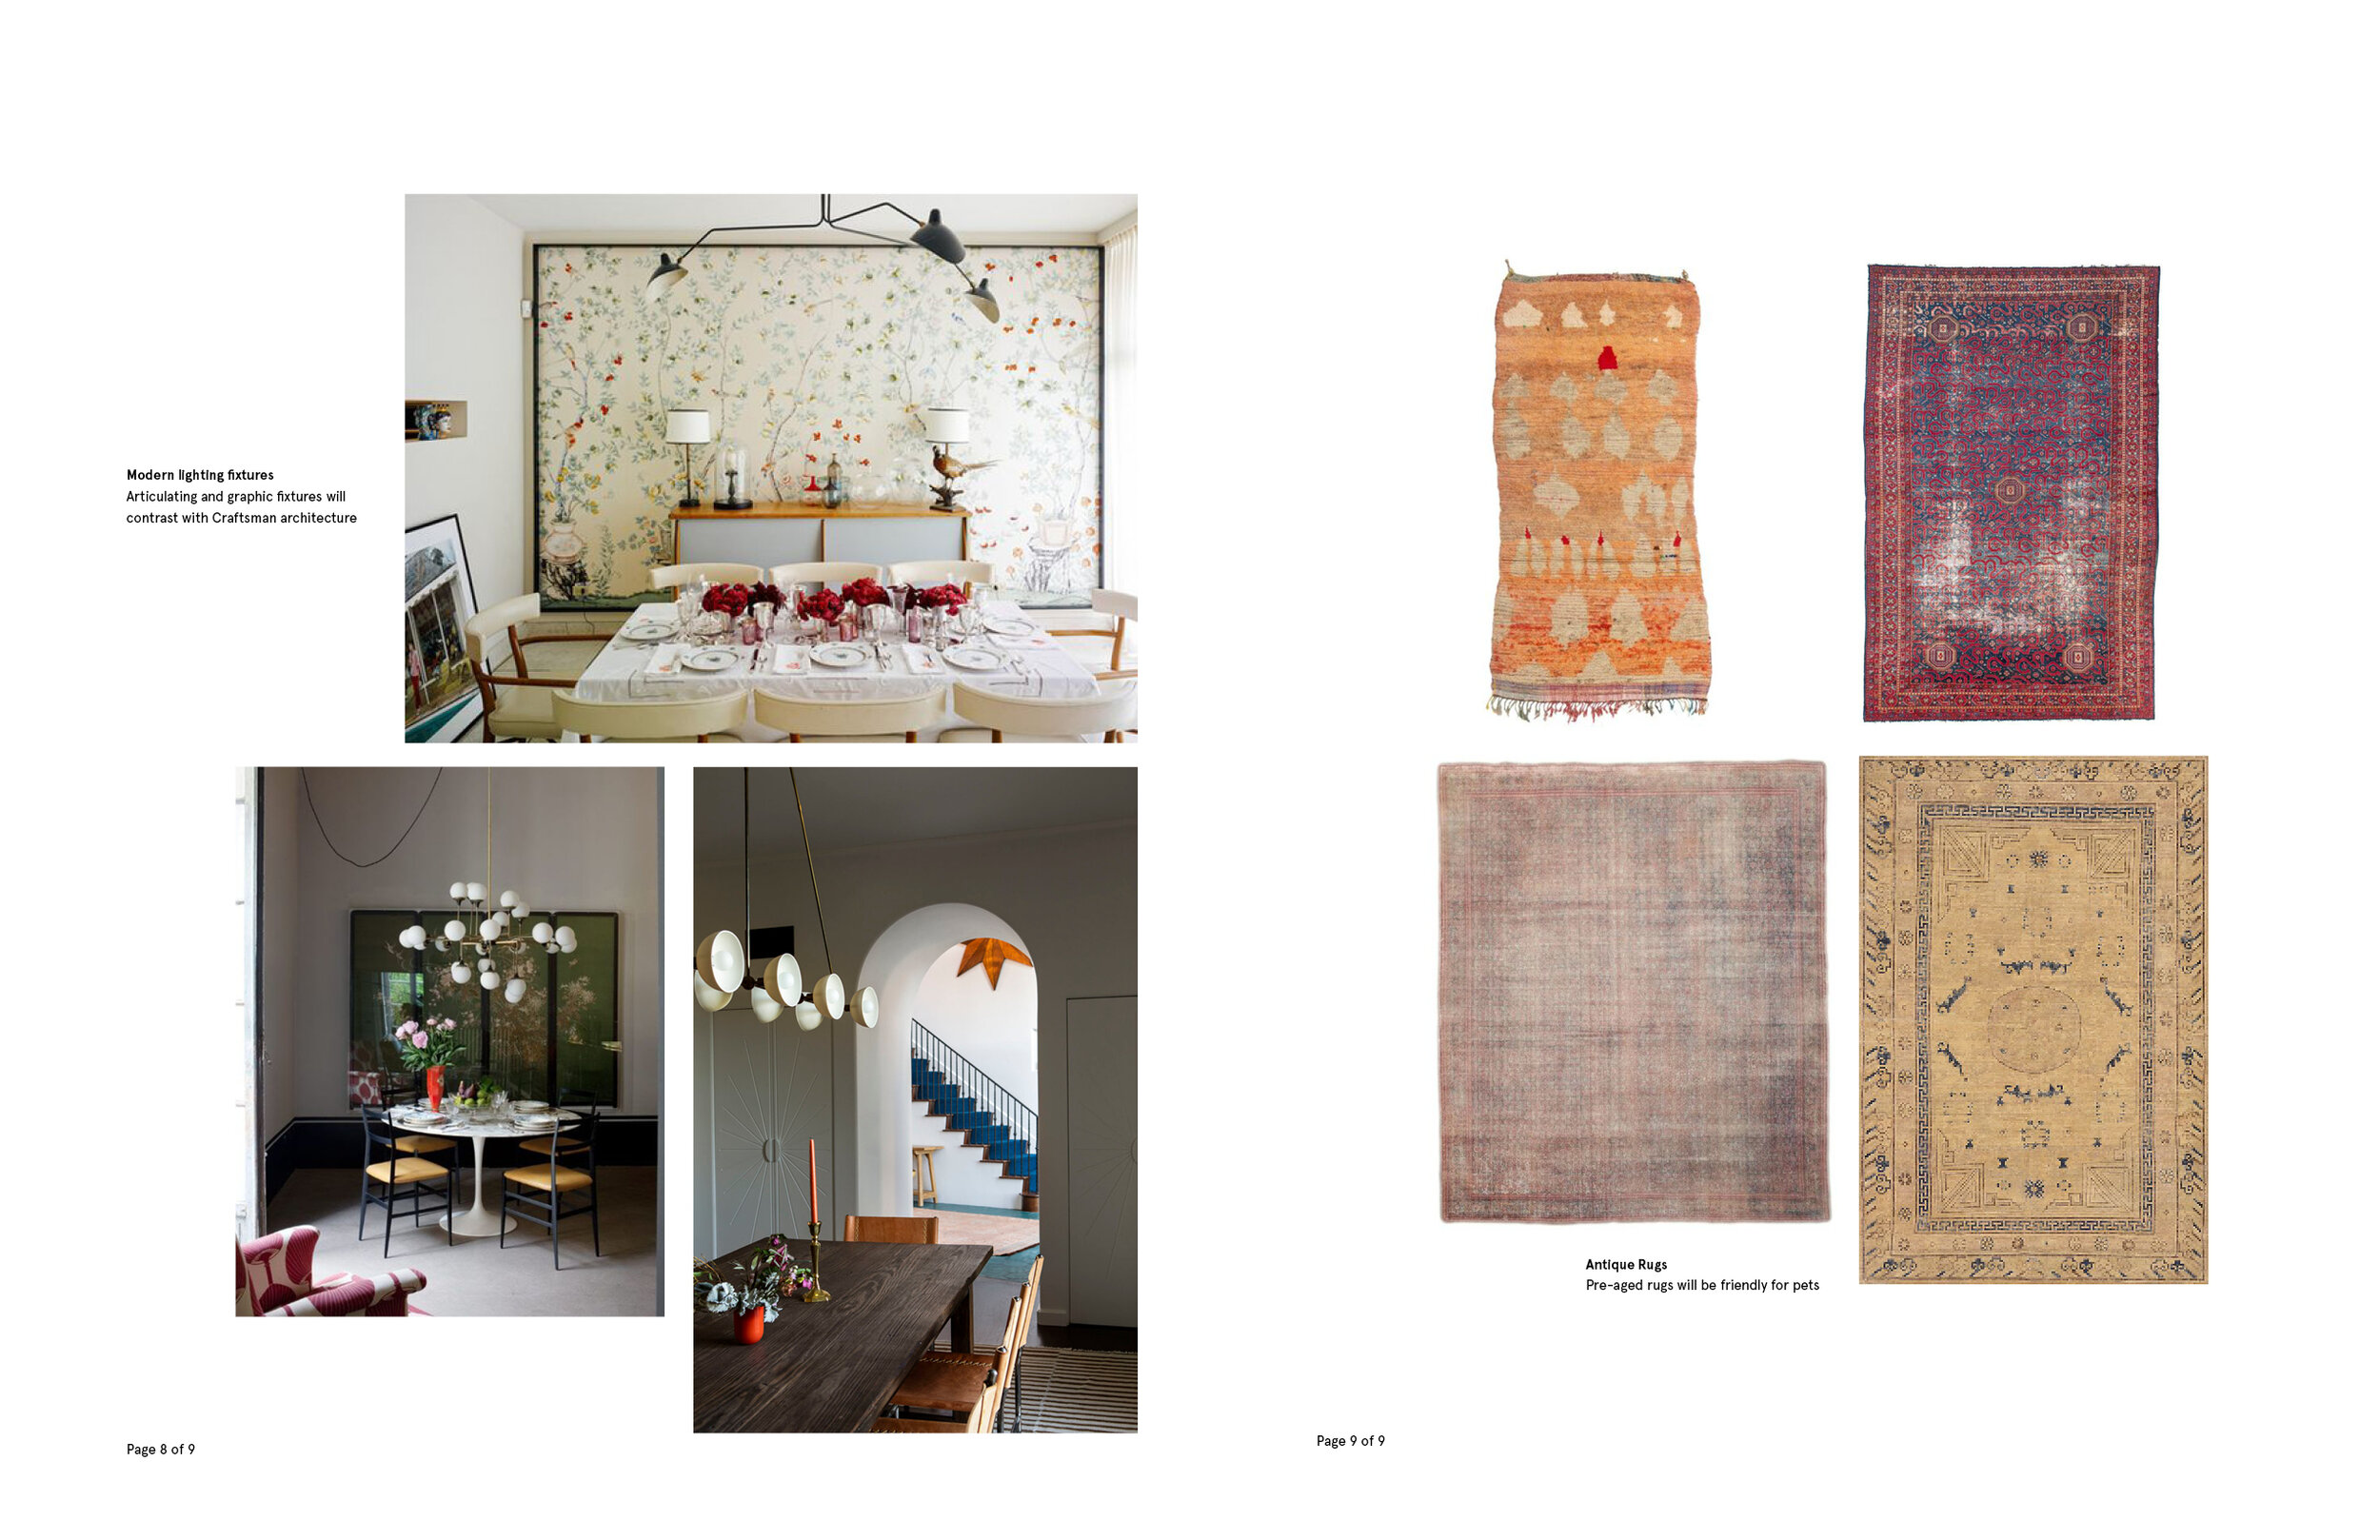 style guide single pages5.jpg